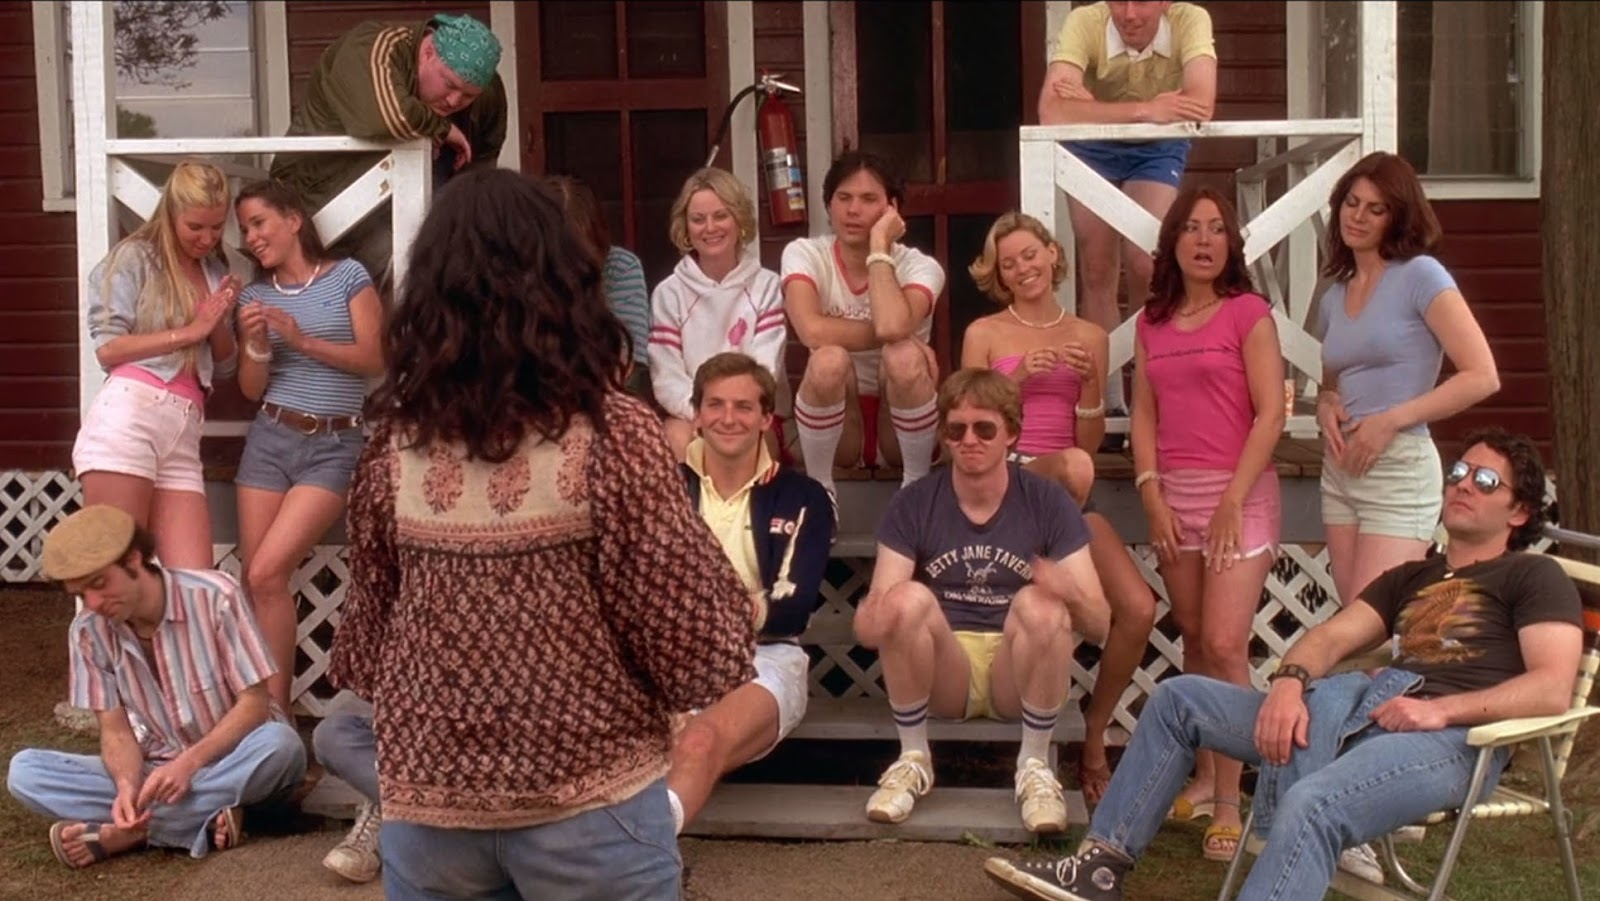 A majority of the ensemble cast and some extras gathered on the steps to one of the camp's cabins to listen to Camp Director Beth (Garofalo), who is faced with her back towards the camera.  Some are listening attentively (Susie/Poehler, Ben/Cooper and McKinley/Black) while Katie (Moreau) is talking with a girlfriend and gum-chewing Abby (Ryan) is facing another way. Andy (Rudd) is sitting on a chair next to the steps, wearing his sunglasses to add to his rebellious side.